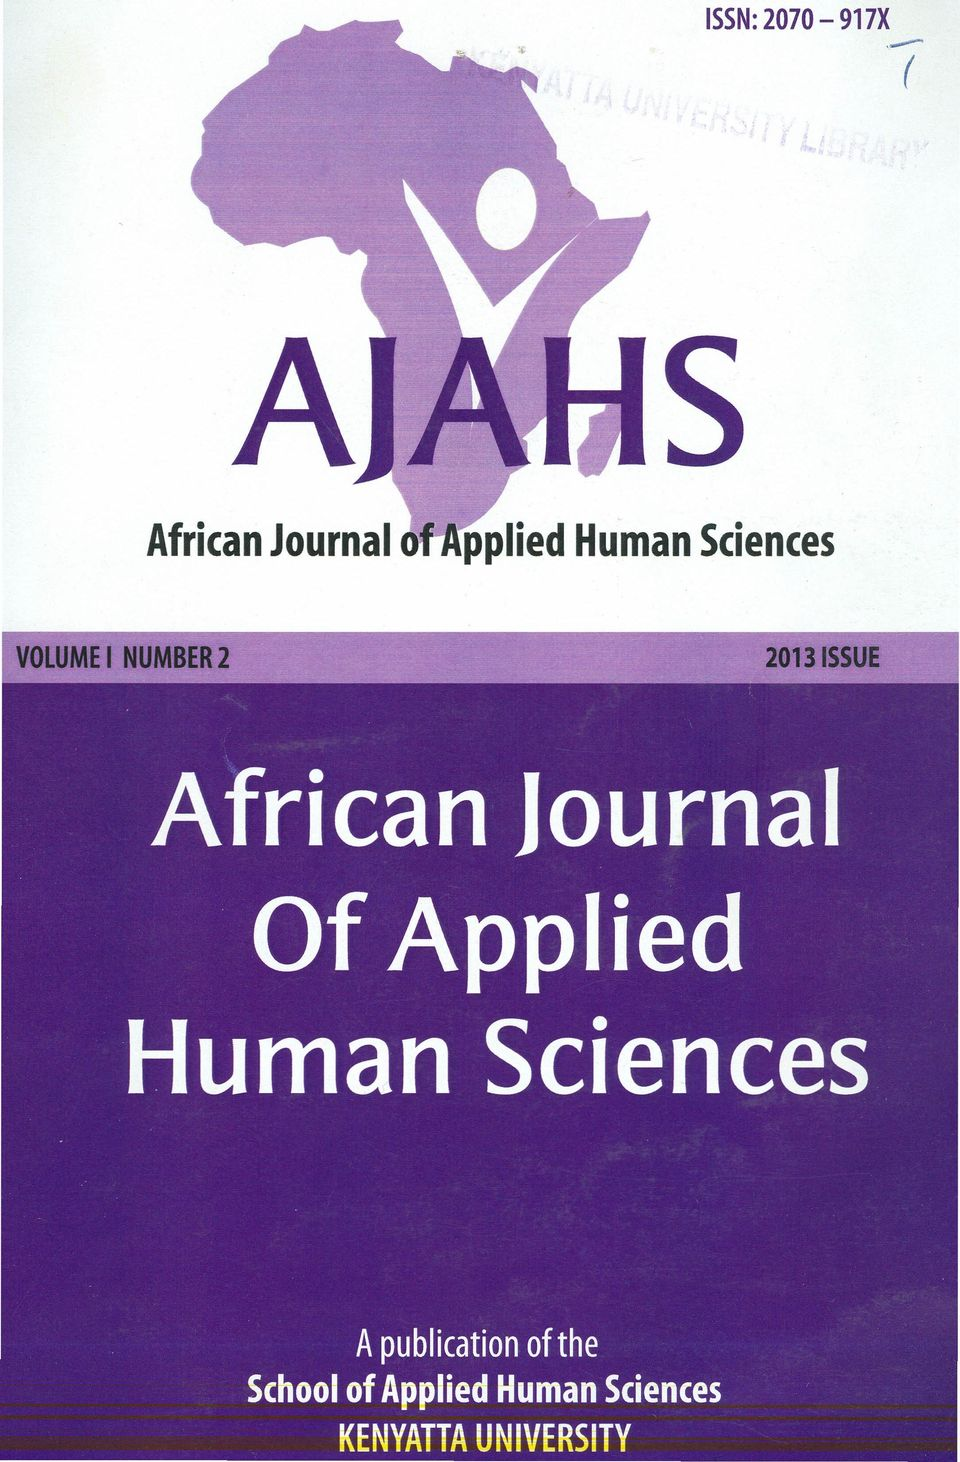 Journal Of Applied Human Sciences A publication of